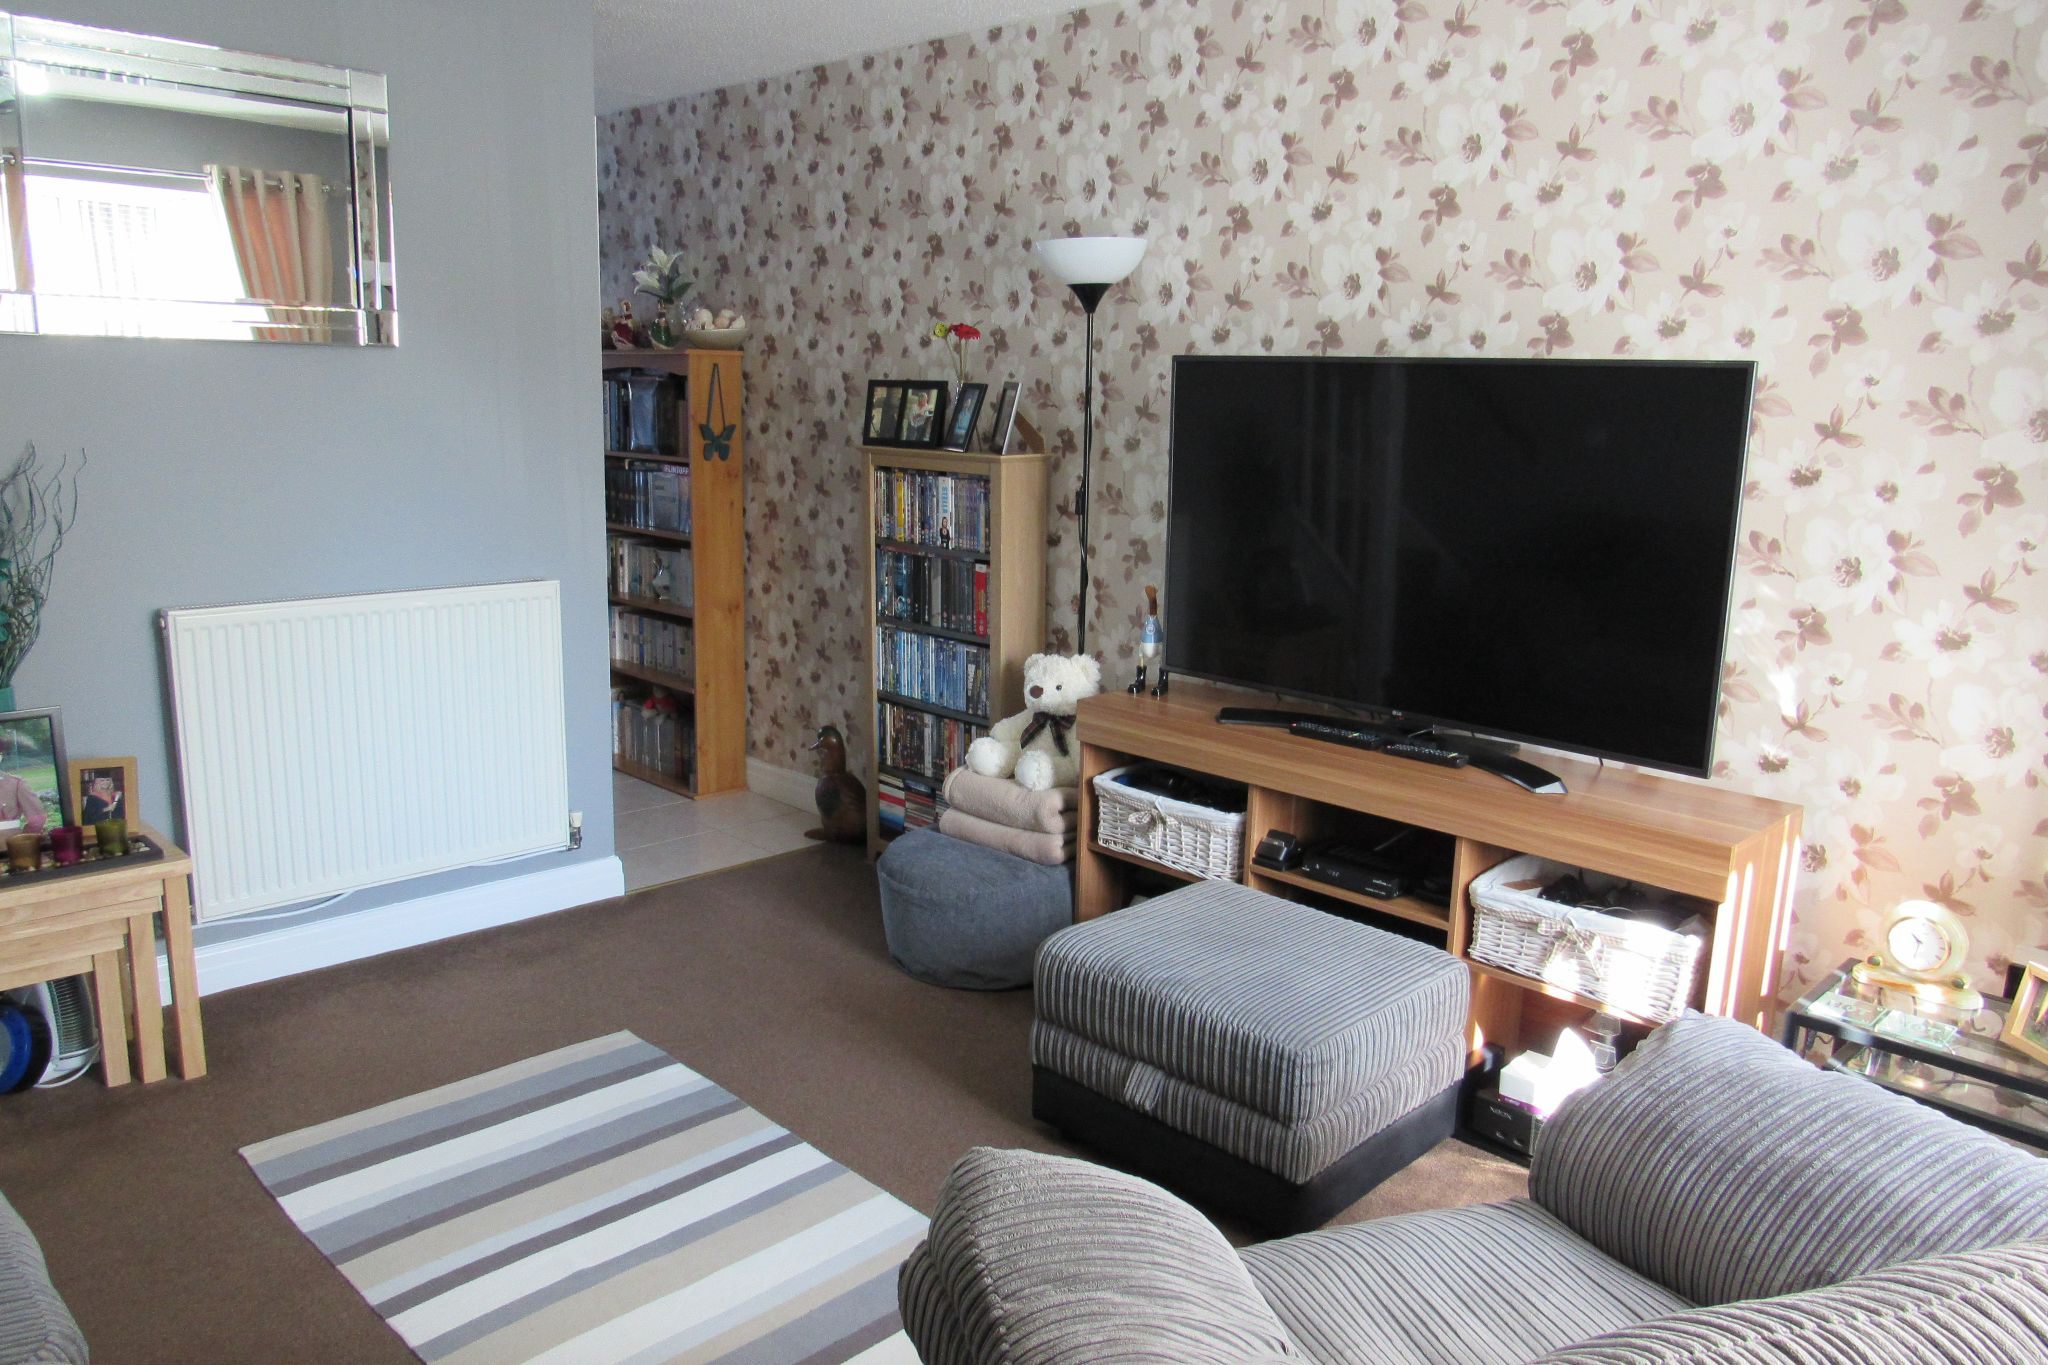 2 bedroom semi-detached house SSTC in Manchester - Photograph 4.